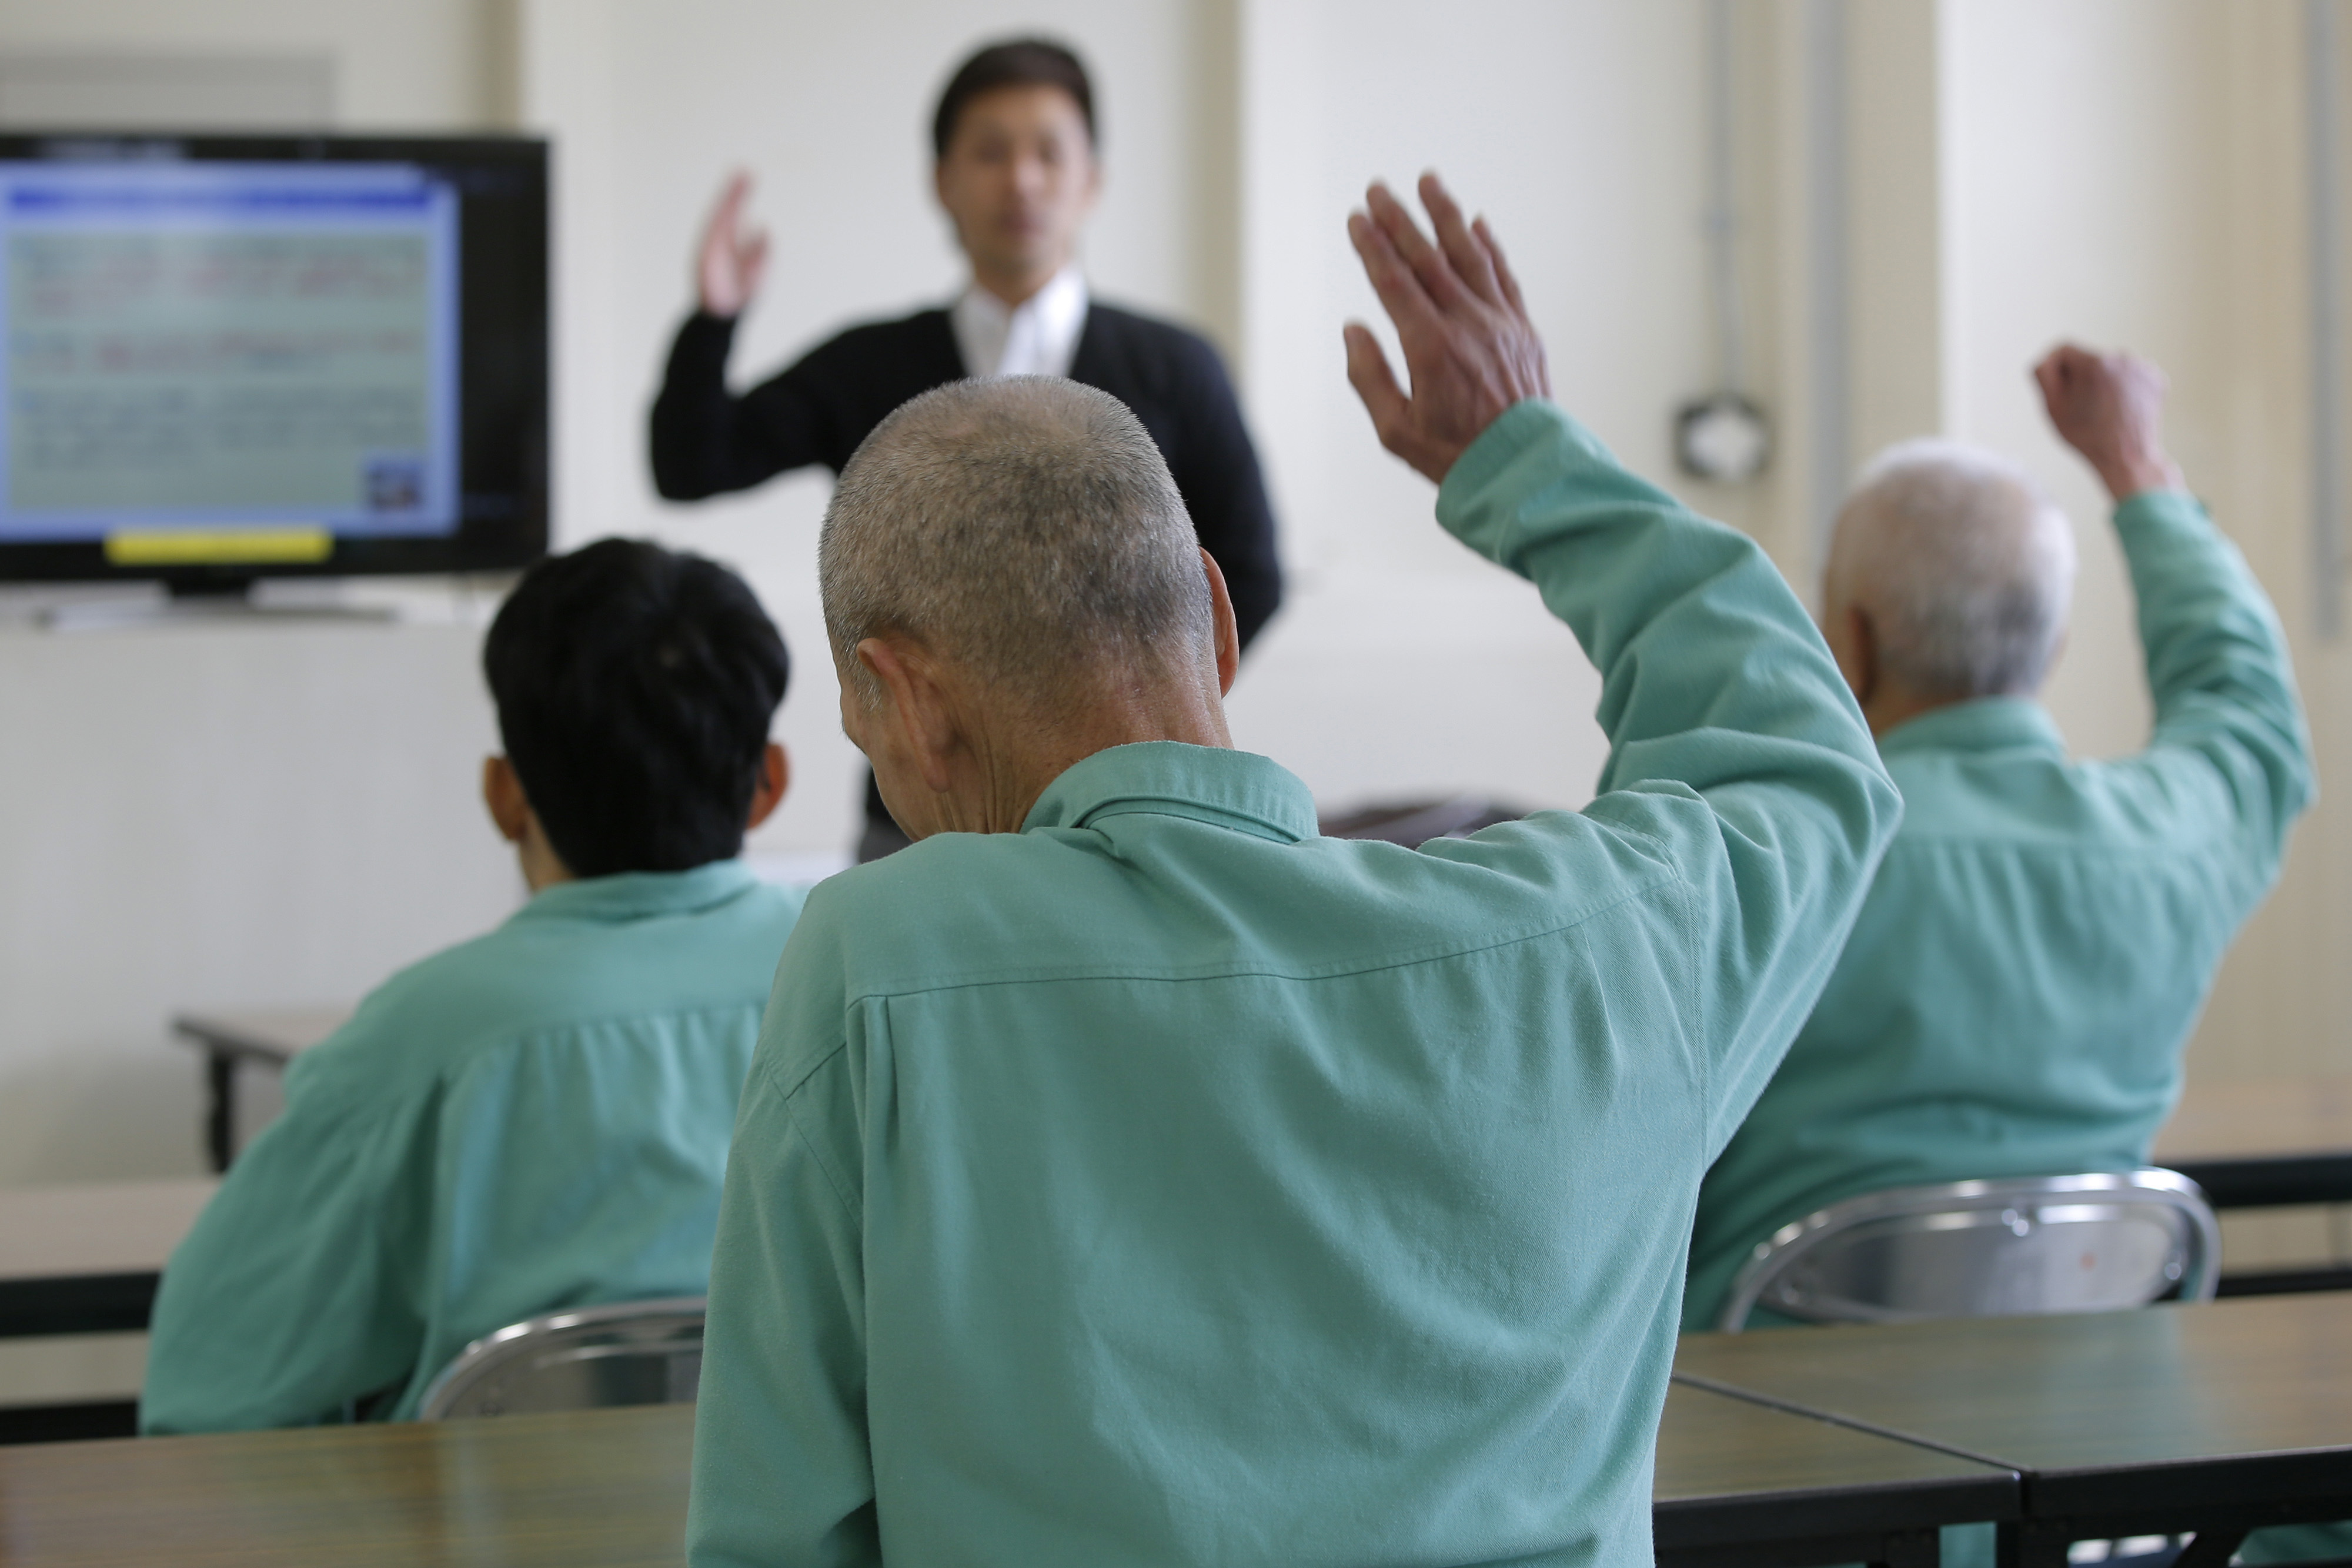 Elderly inmates raise their hands at Sasebo Prison in the city of Sasebo, Nagasaki Prefecture, on March 13. | BLOOMBERG